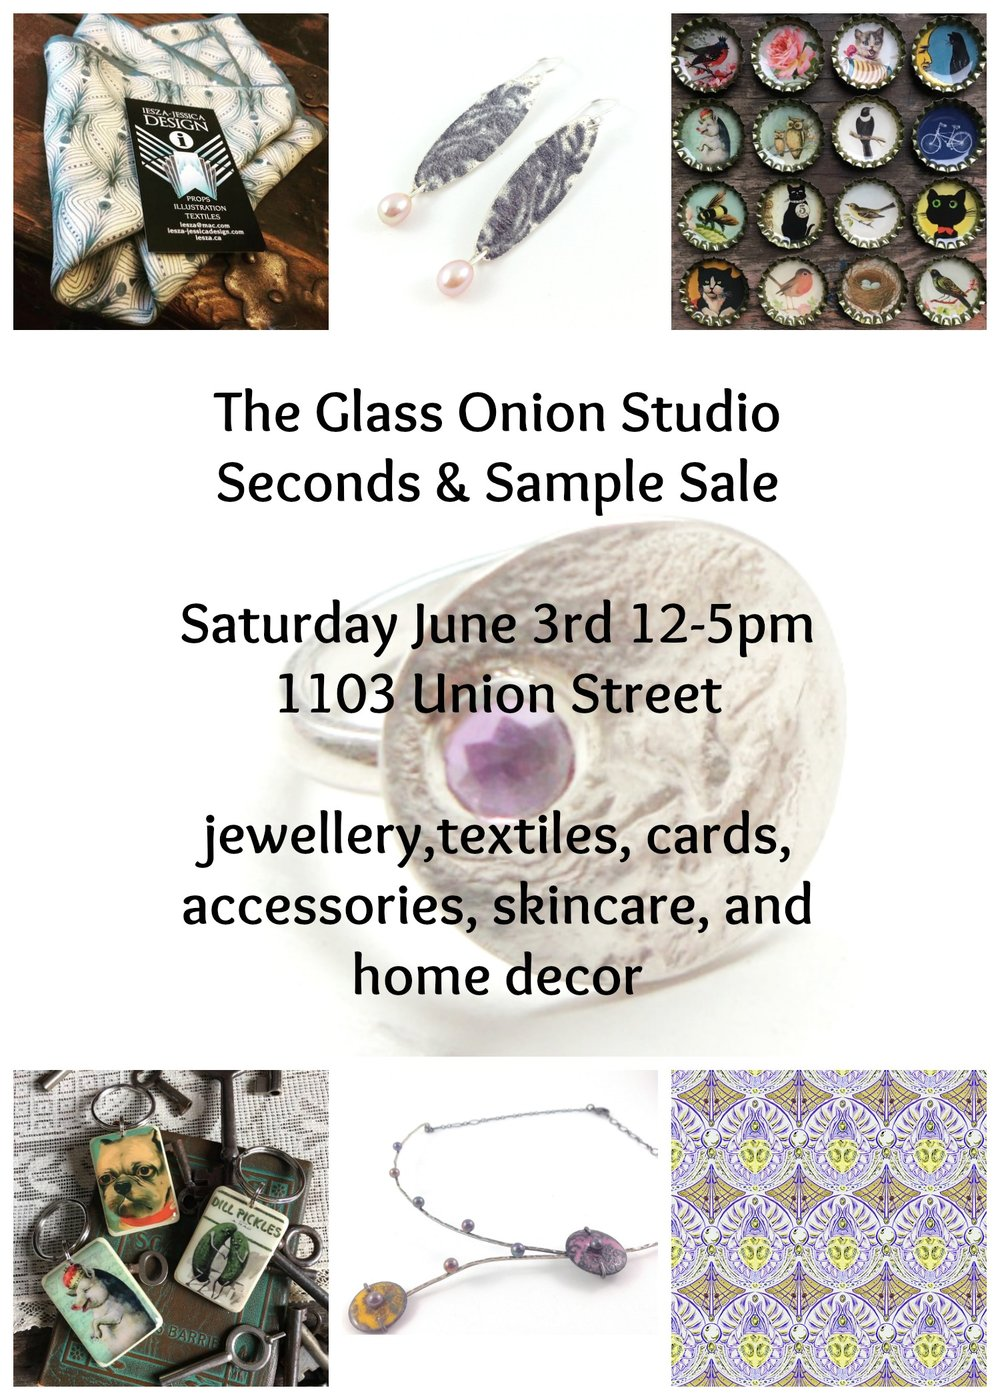 glass onion studio sample sale